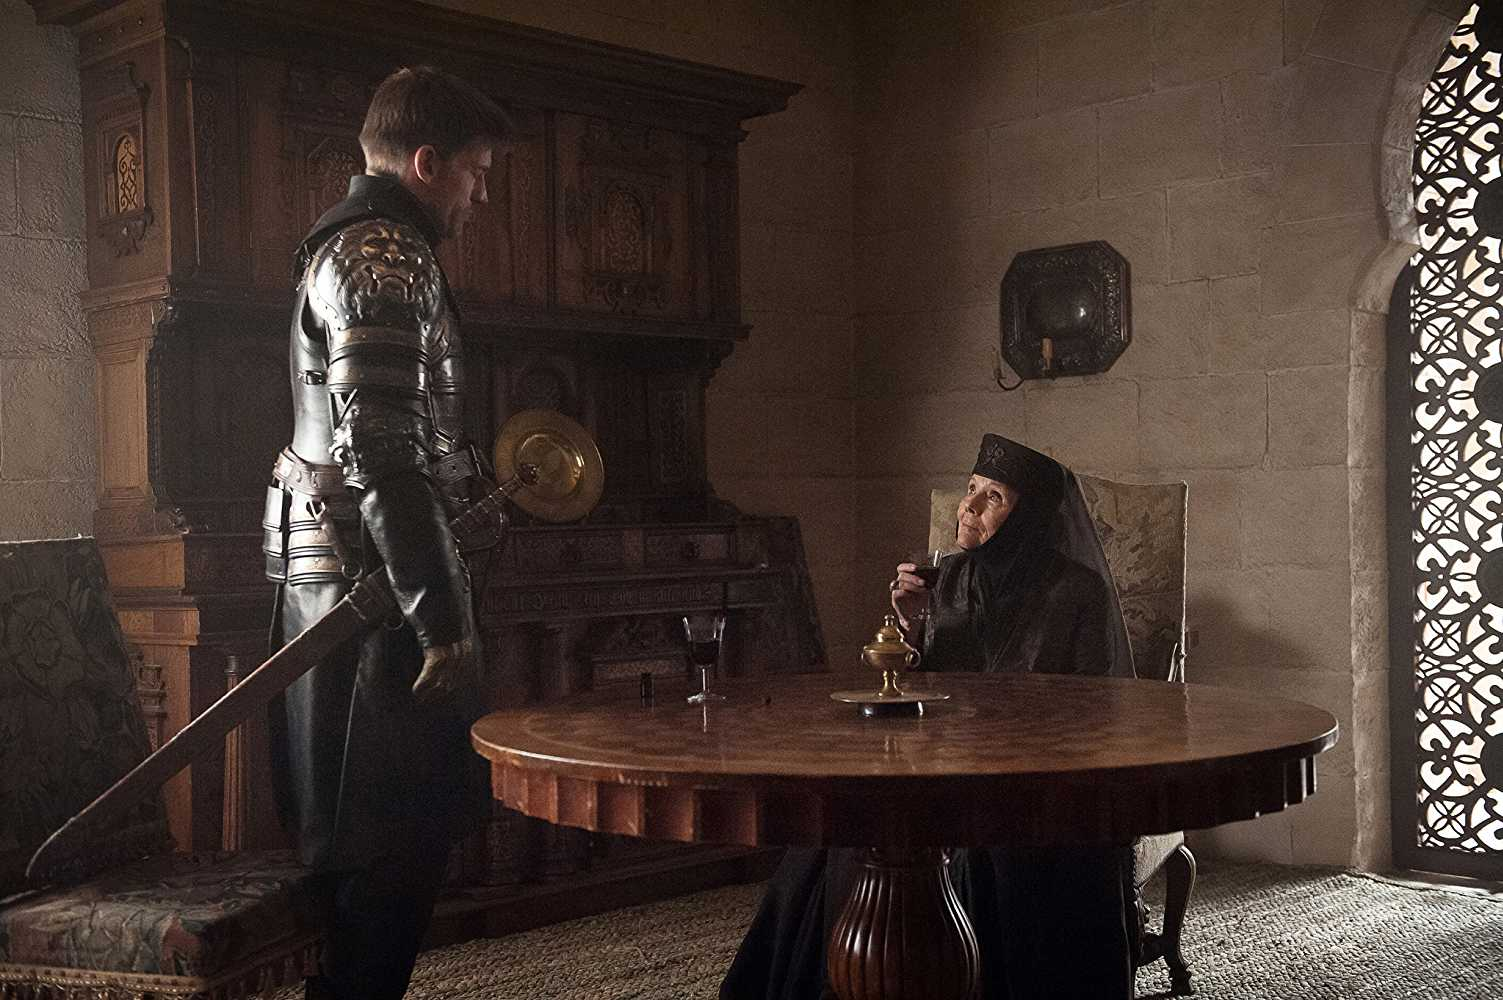 Nikolaj Coster-Waldau (Jaime Lannister) and Diana Rigg (Olenna Tyrell) and in 'Game of Thrones'. (Source: IMDB)